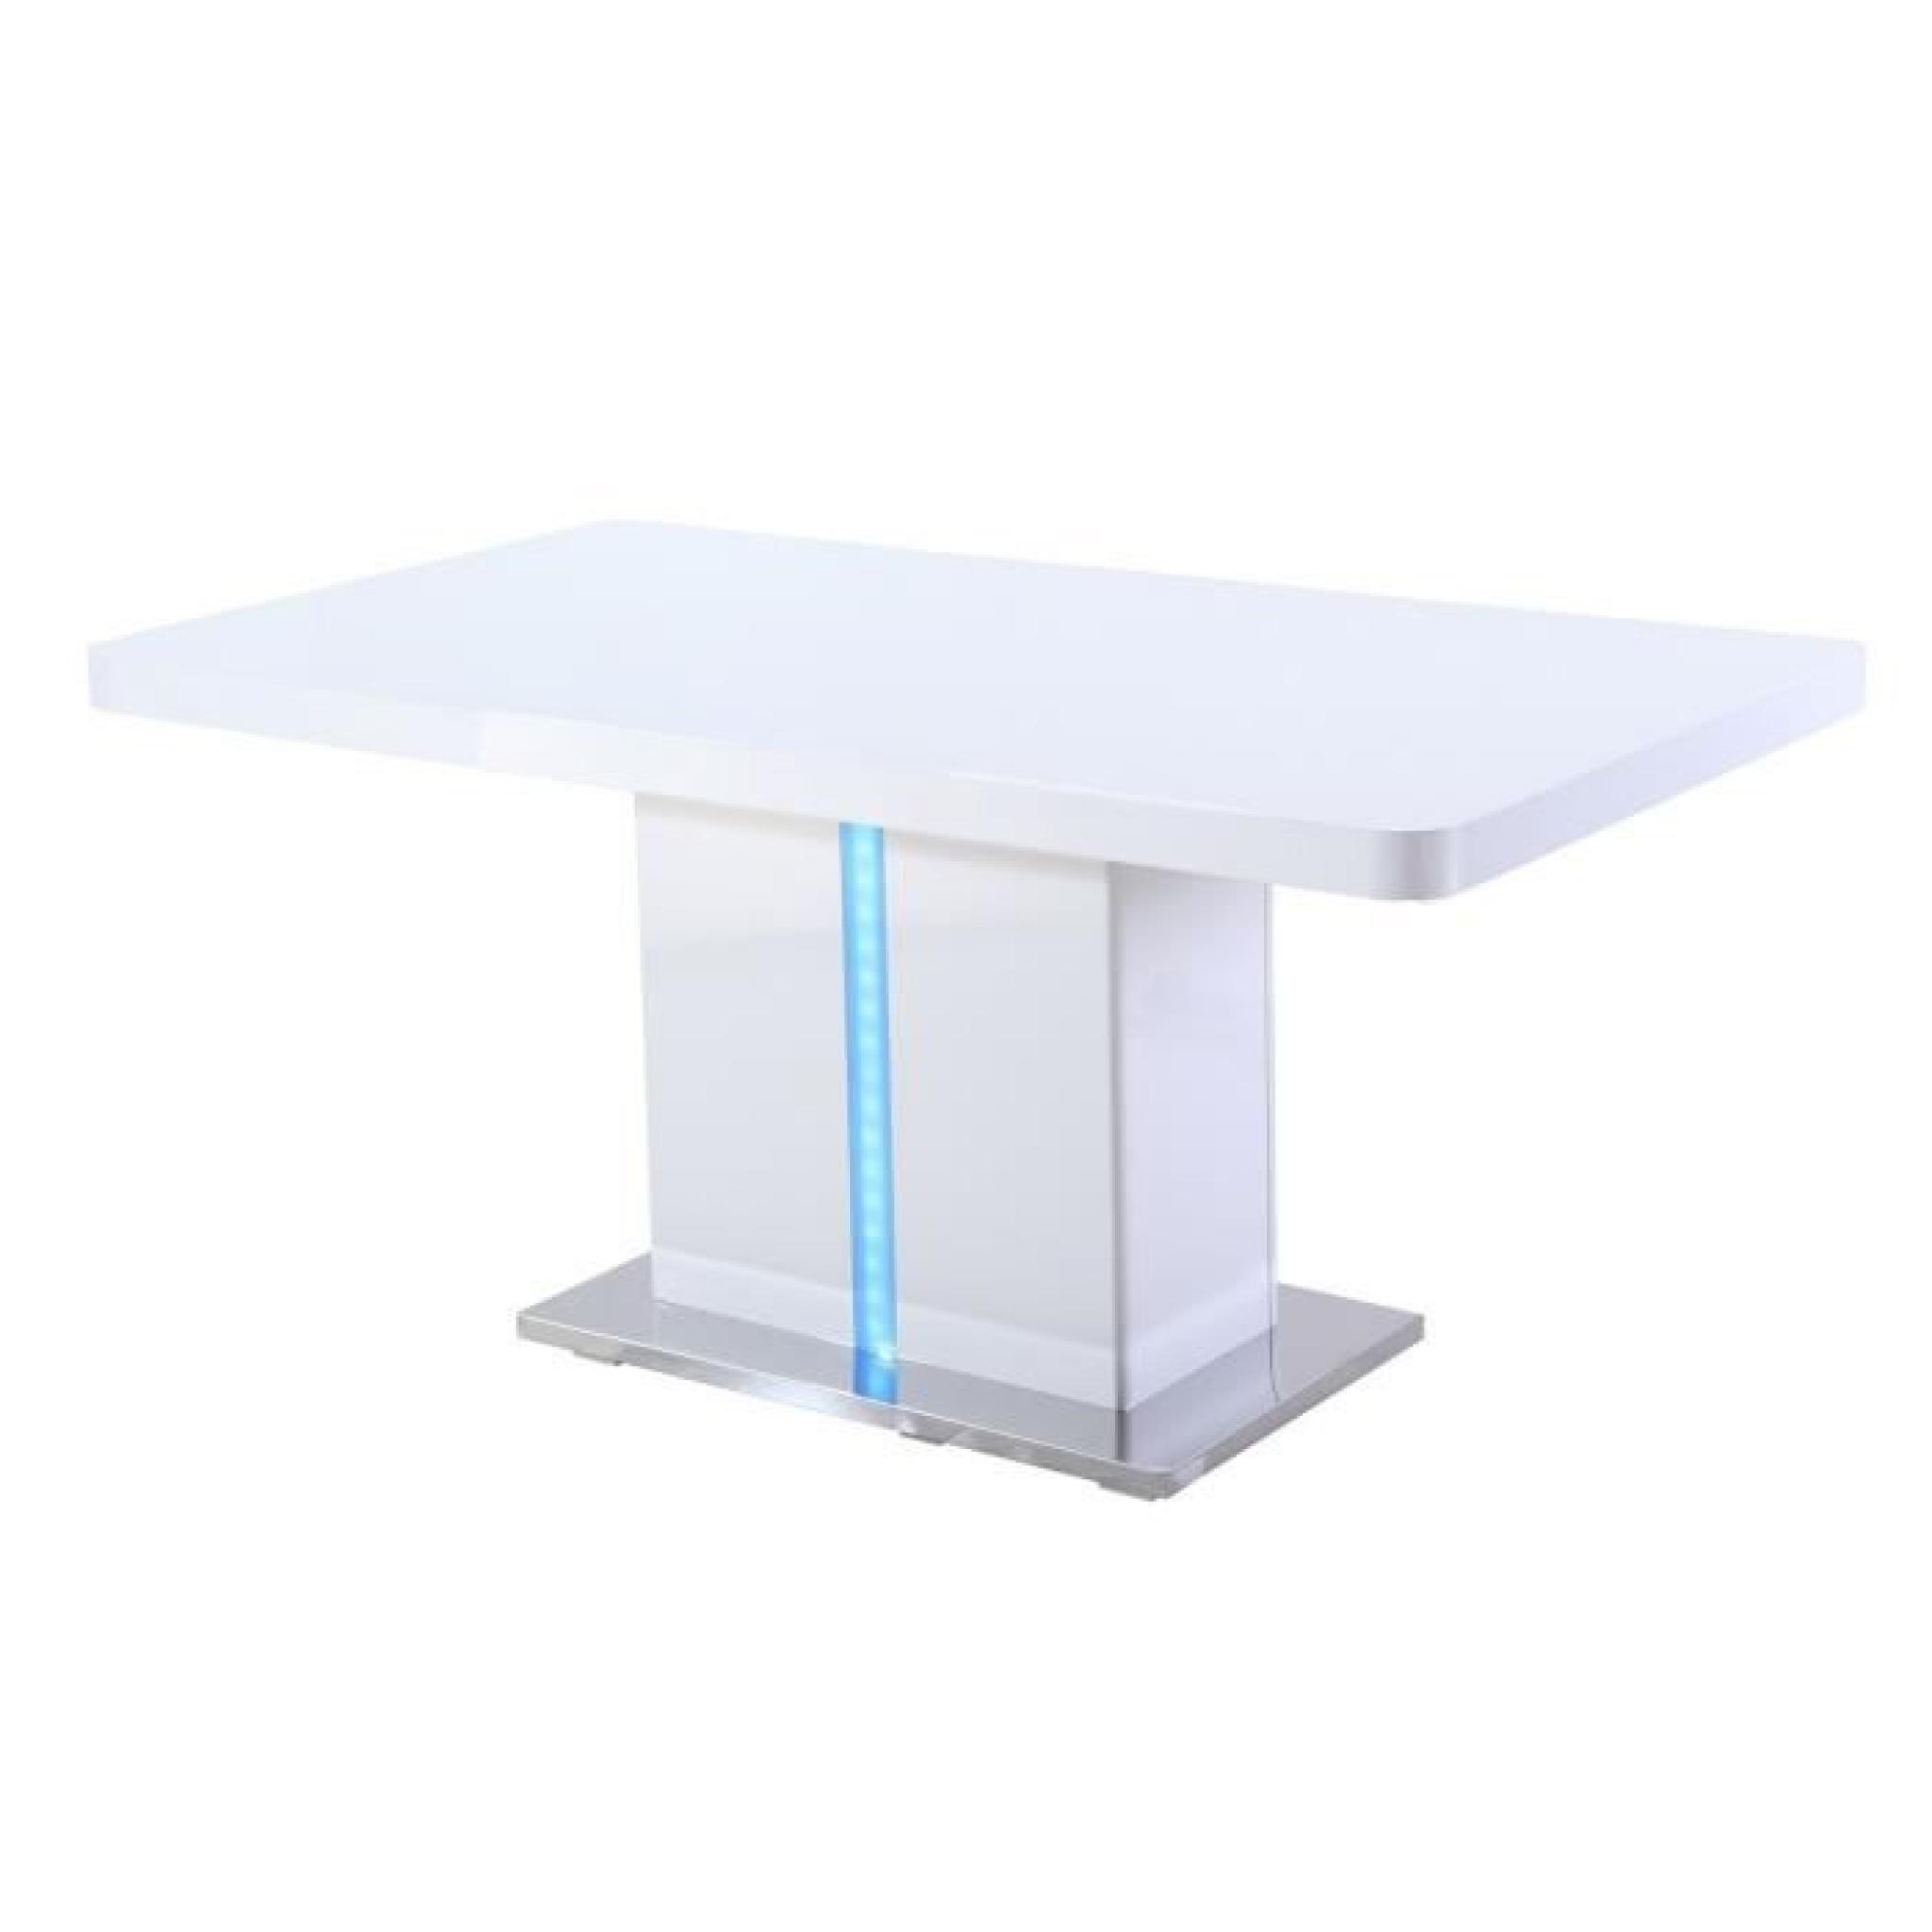 Table a manger blanc laque maison design for Table salle a manger design laque blanc